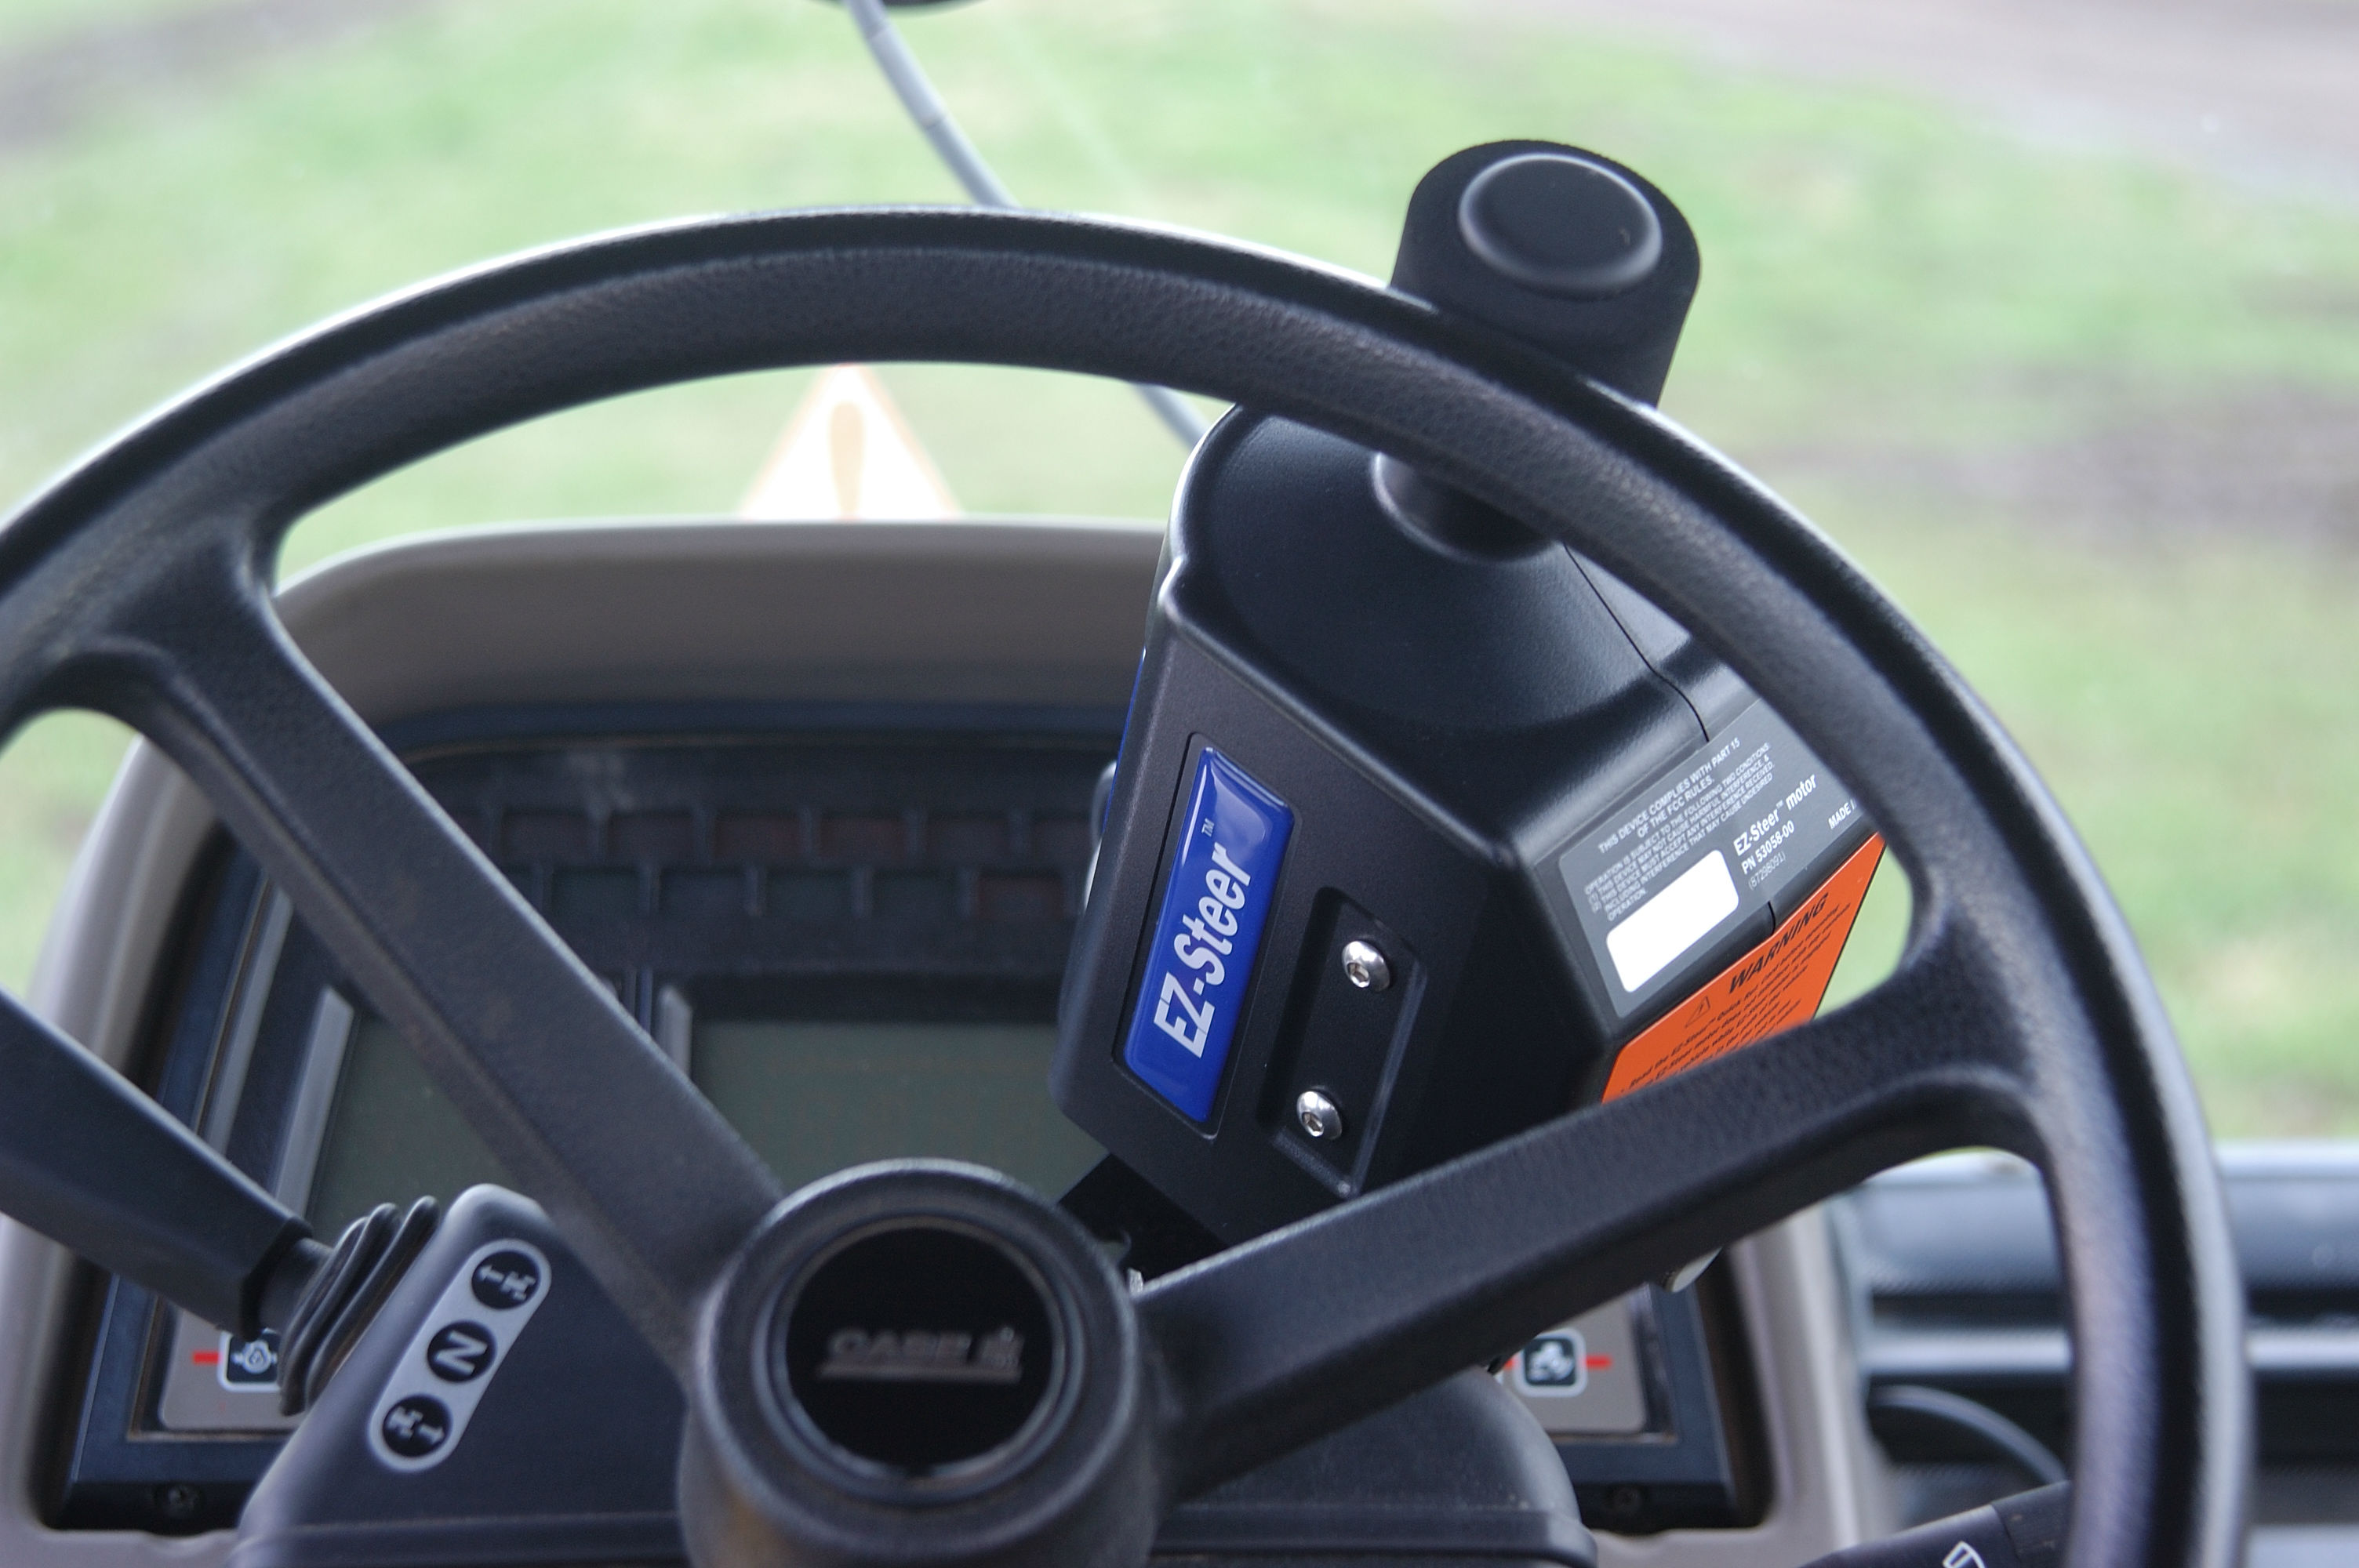 Trimble EZ-Steer Foot Switch with Accessory Cable # 60941-00